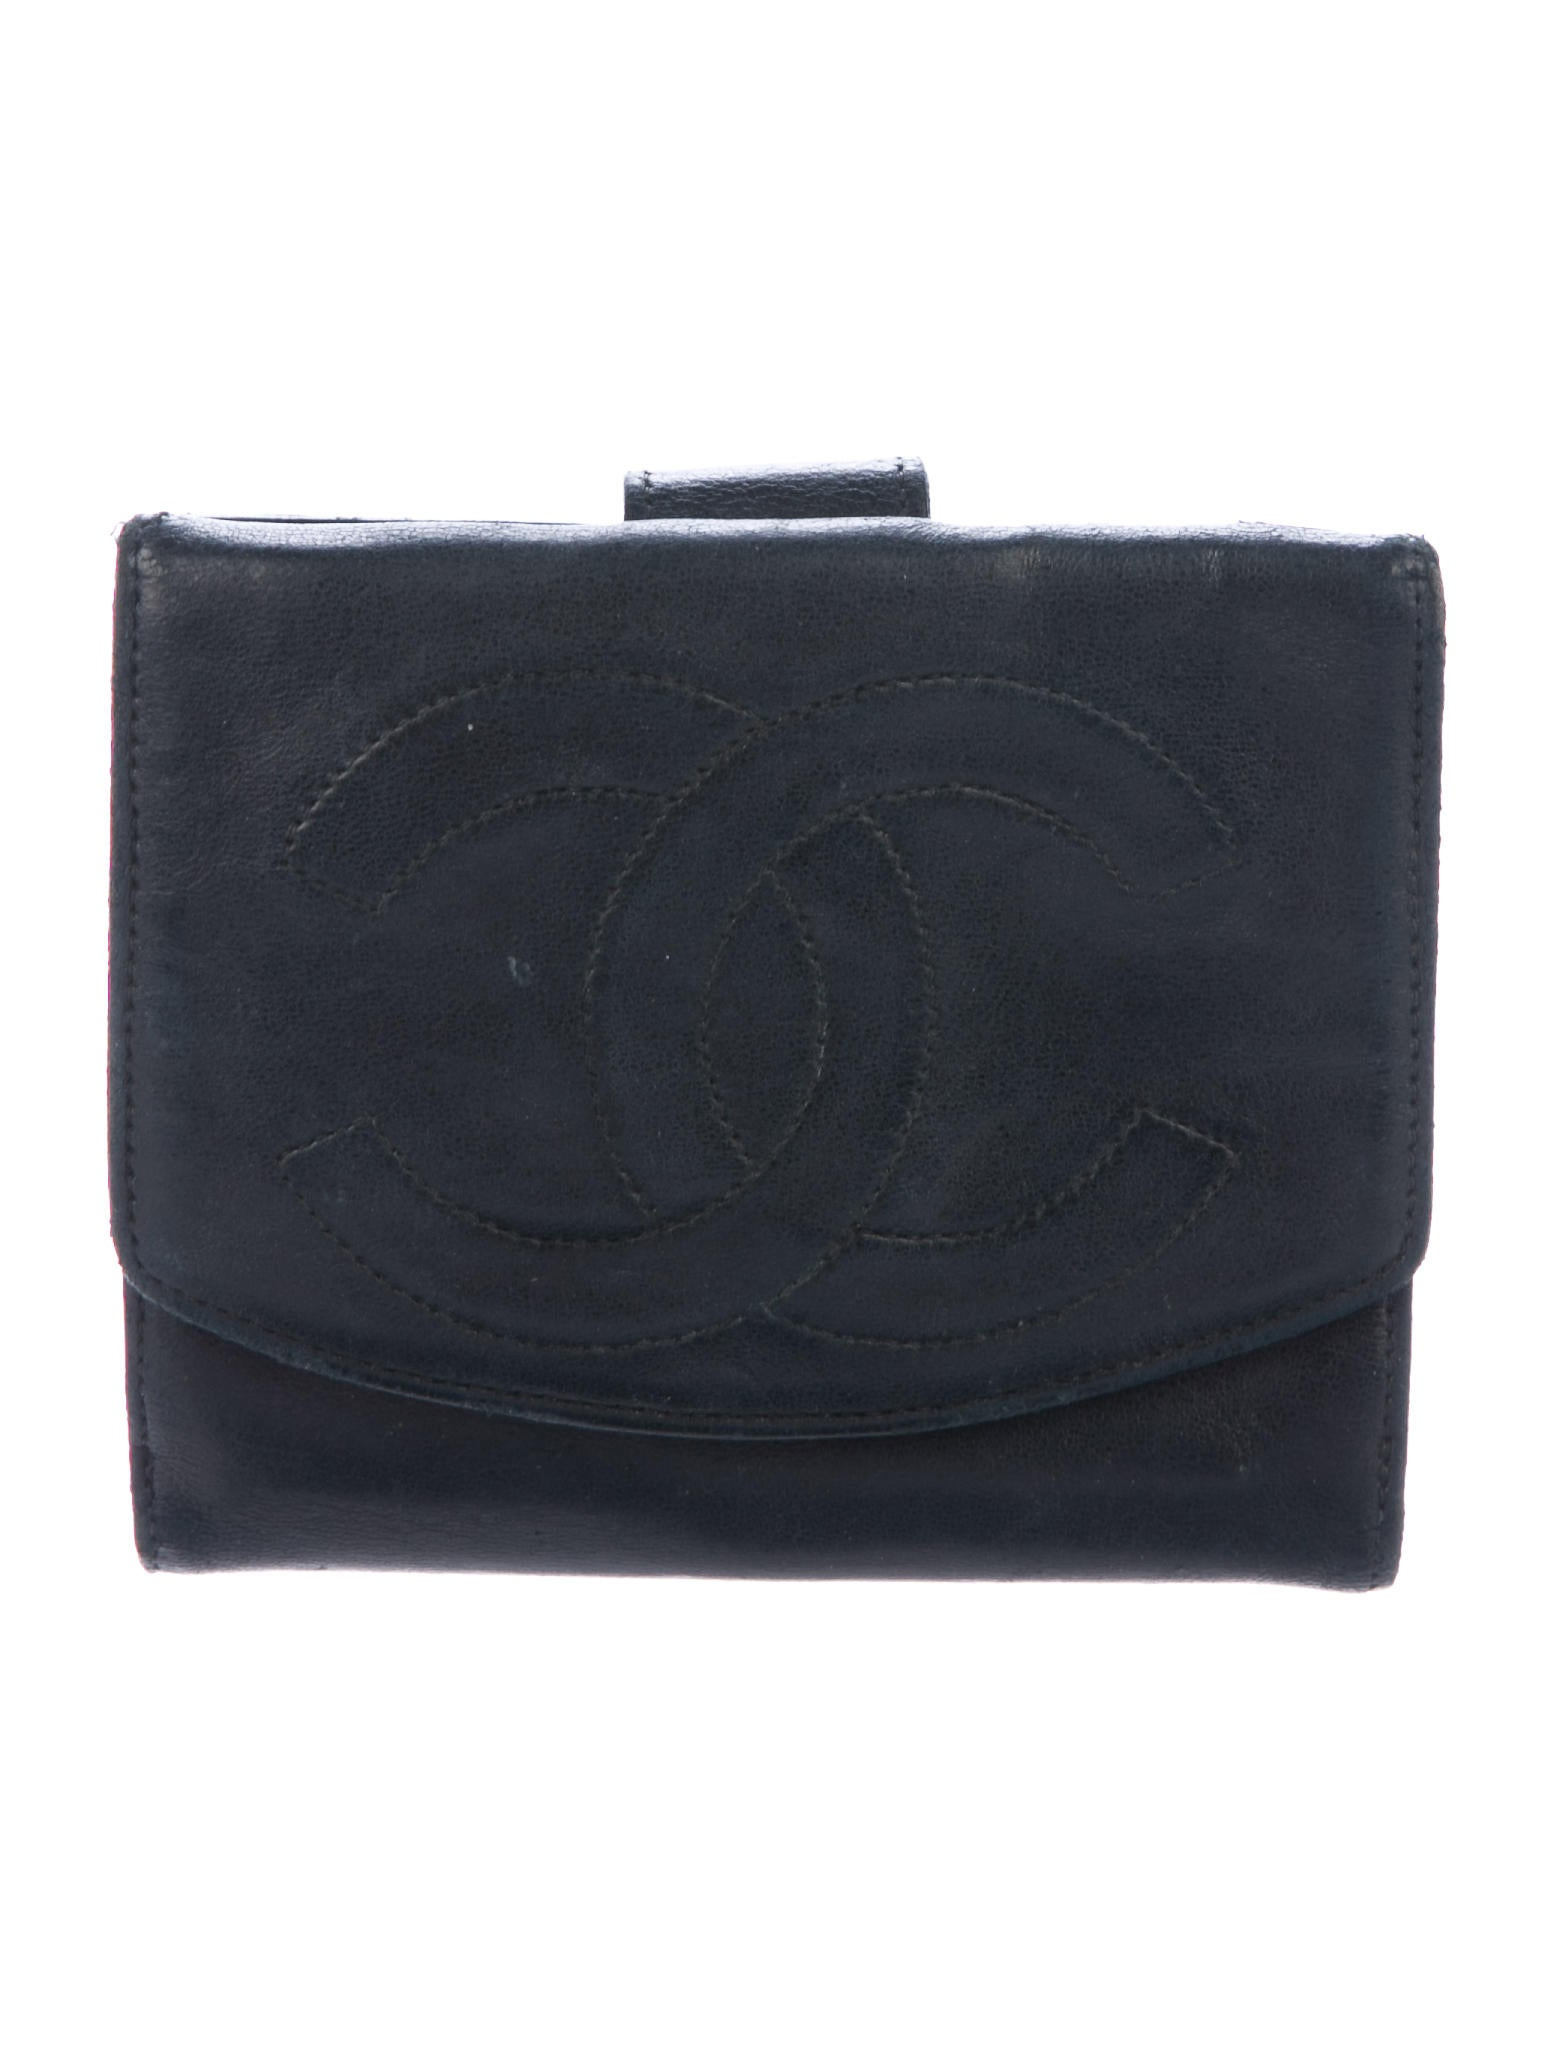 Chanel Vintage Timeless Compact Wallet - Accessories ...